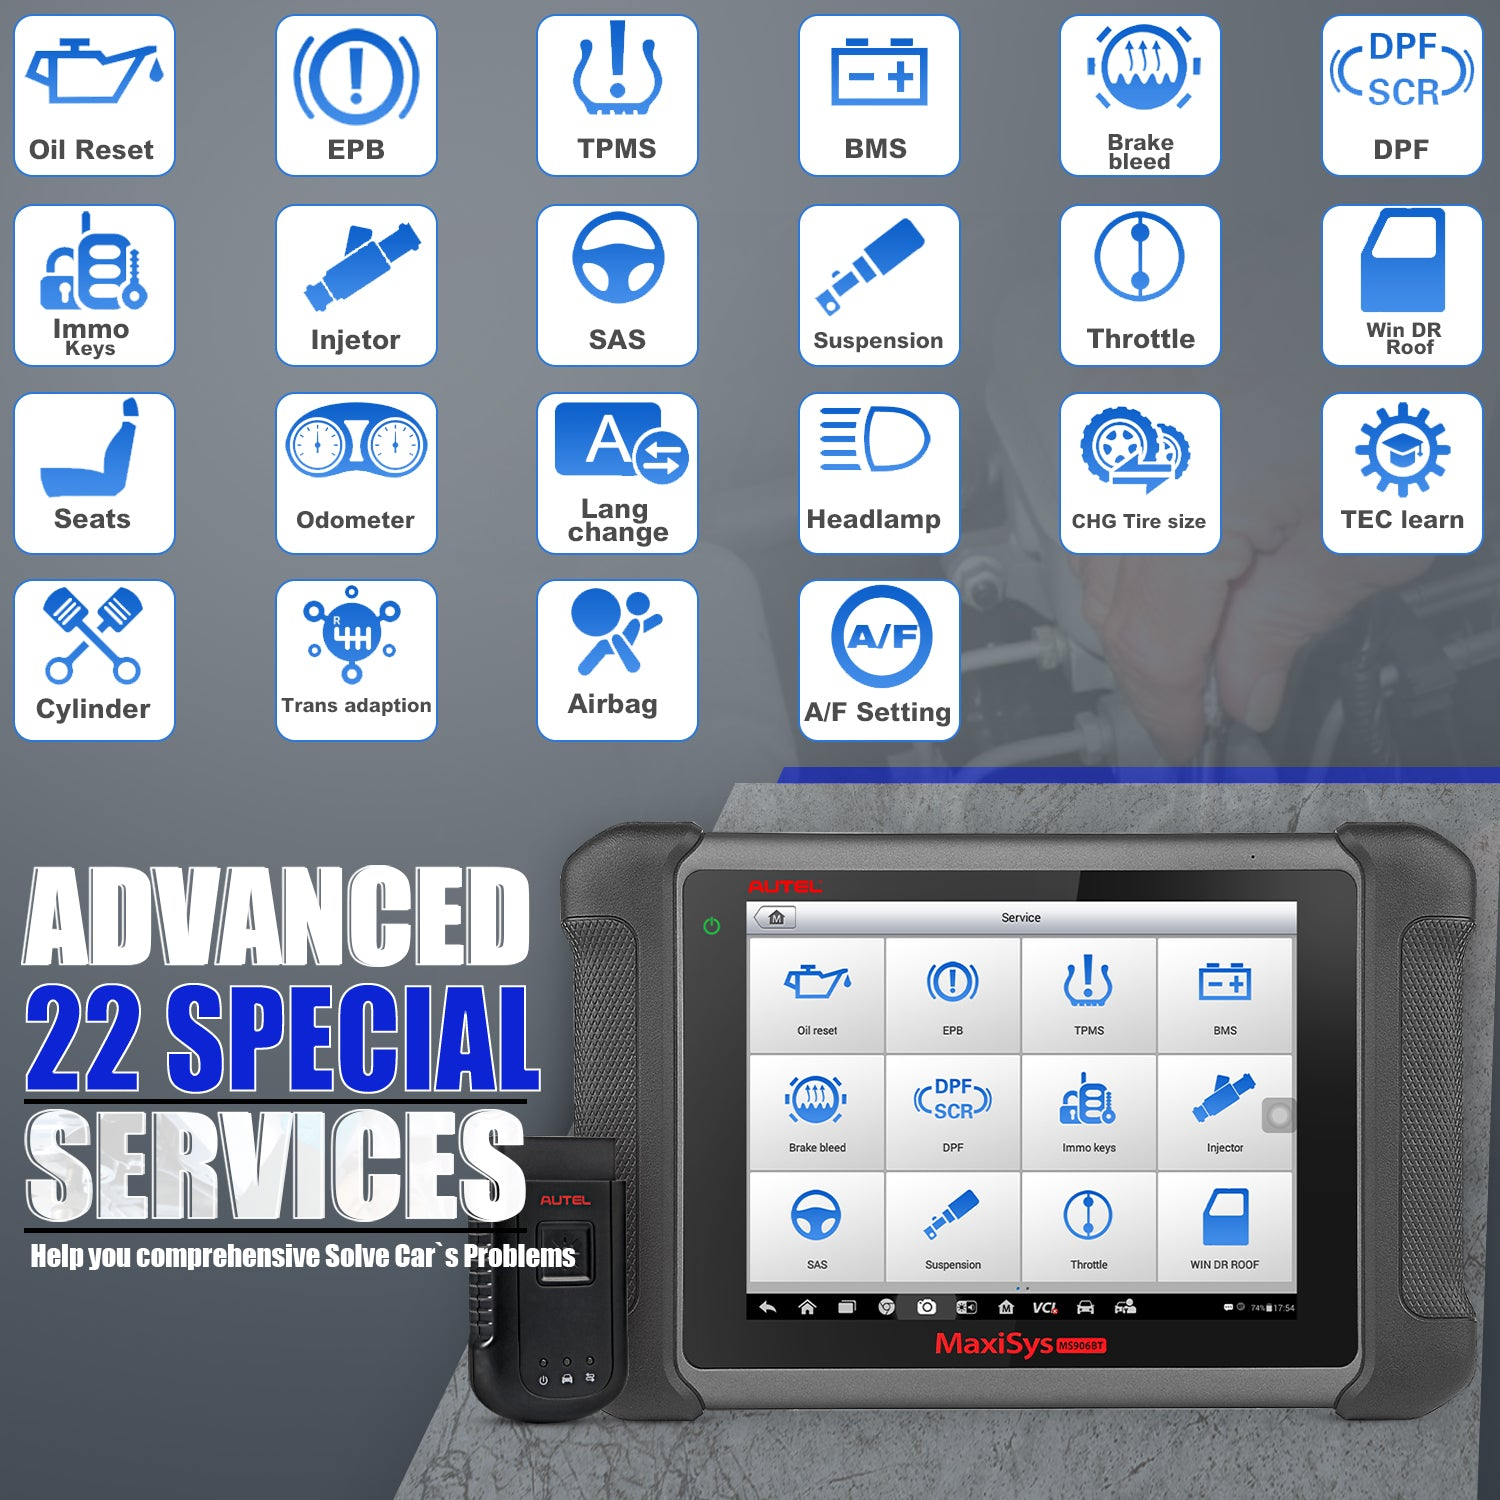 Autel Maxisys MS906BT Bluetooth OBD2 Diagnostic Tool with 23 advanced service